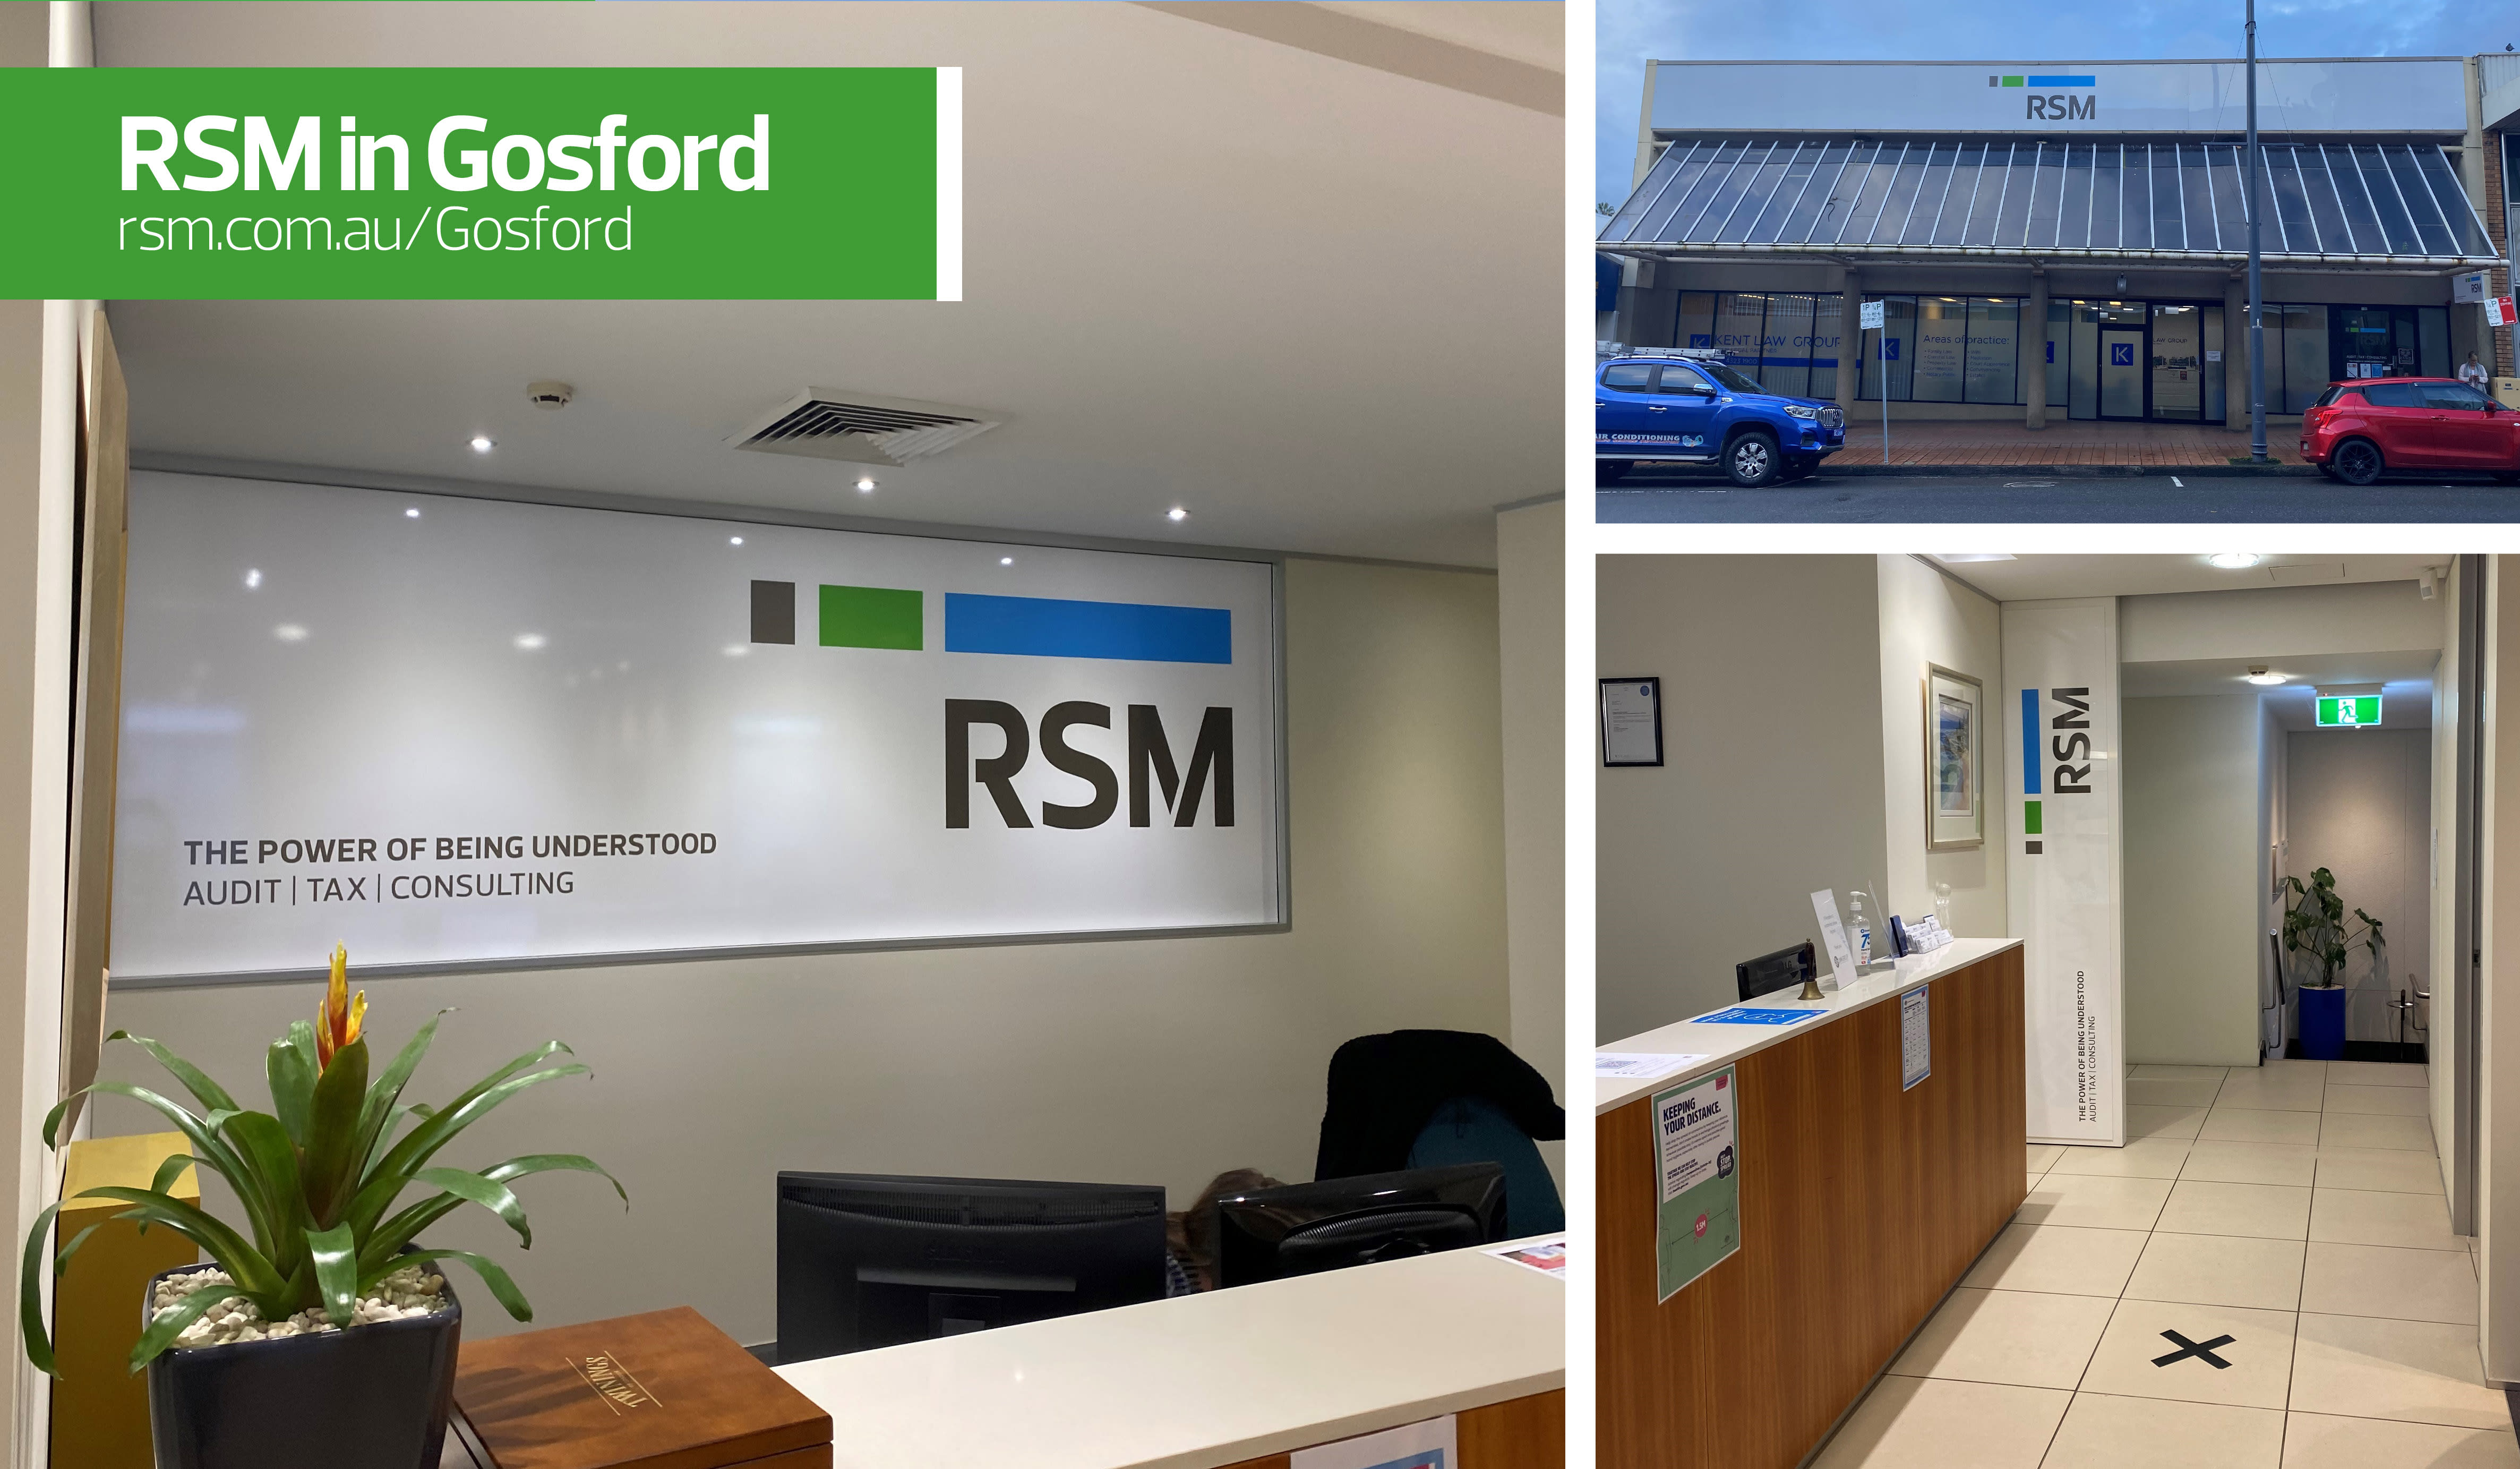 RSM in Gosford offers business advisory, taxation and accounting services to Gosford and the central coast.